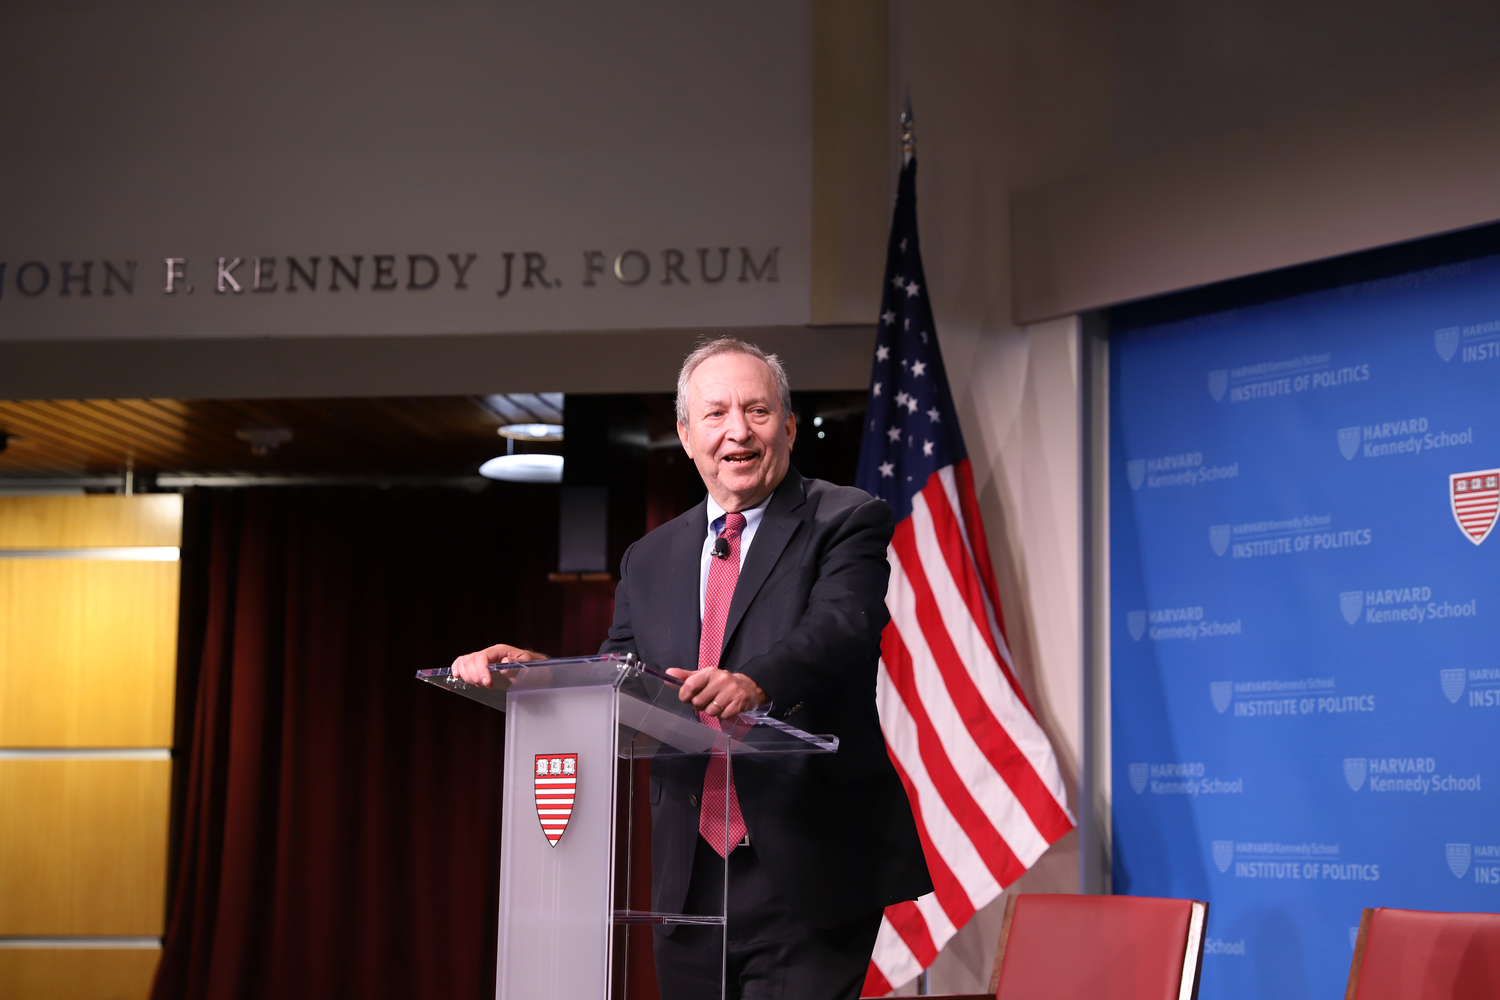 Professor Larry Summers introduces Bank of England Governor Mike Carney at the IOP on Wednesday evening. The two professionals discussed The New International Economic Order and the current trade issues in the global economy today.